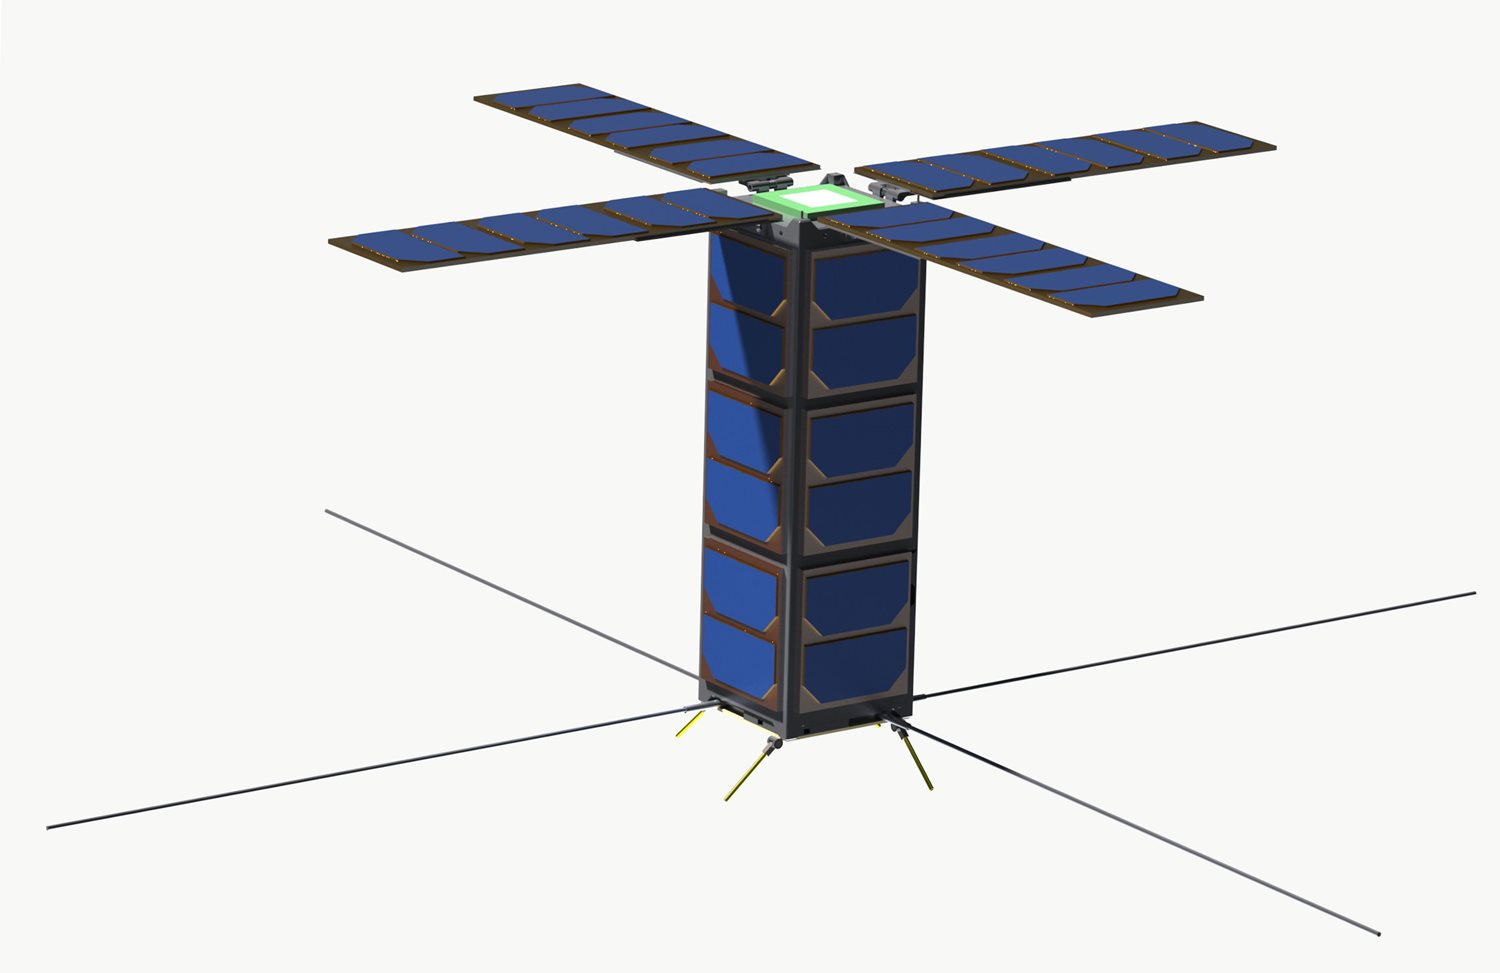 SSTL expands LEO platform capability with VESTA nanosatellite